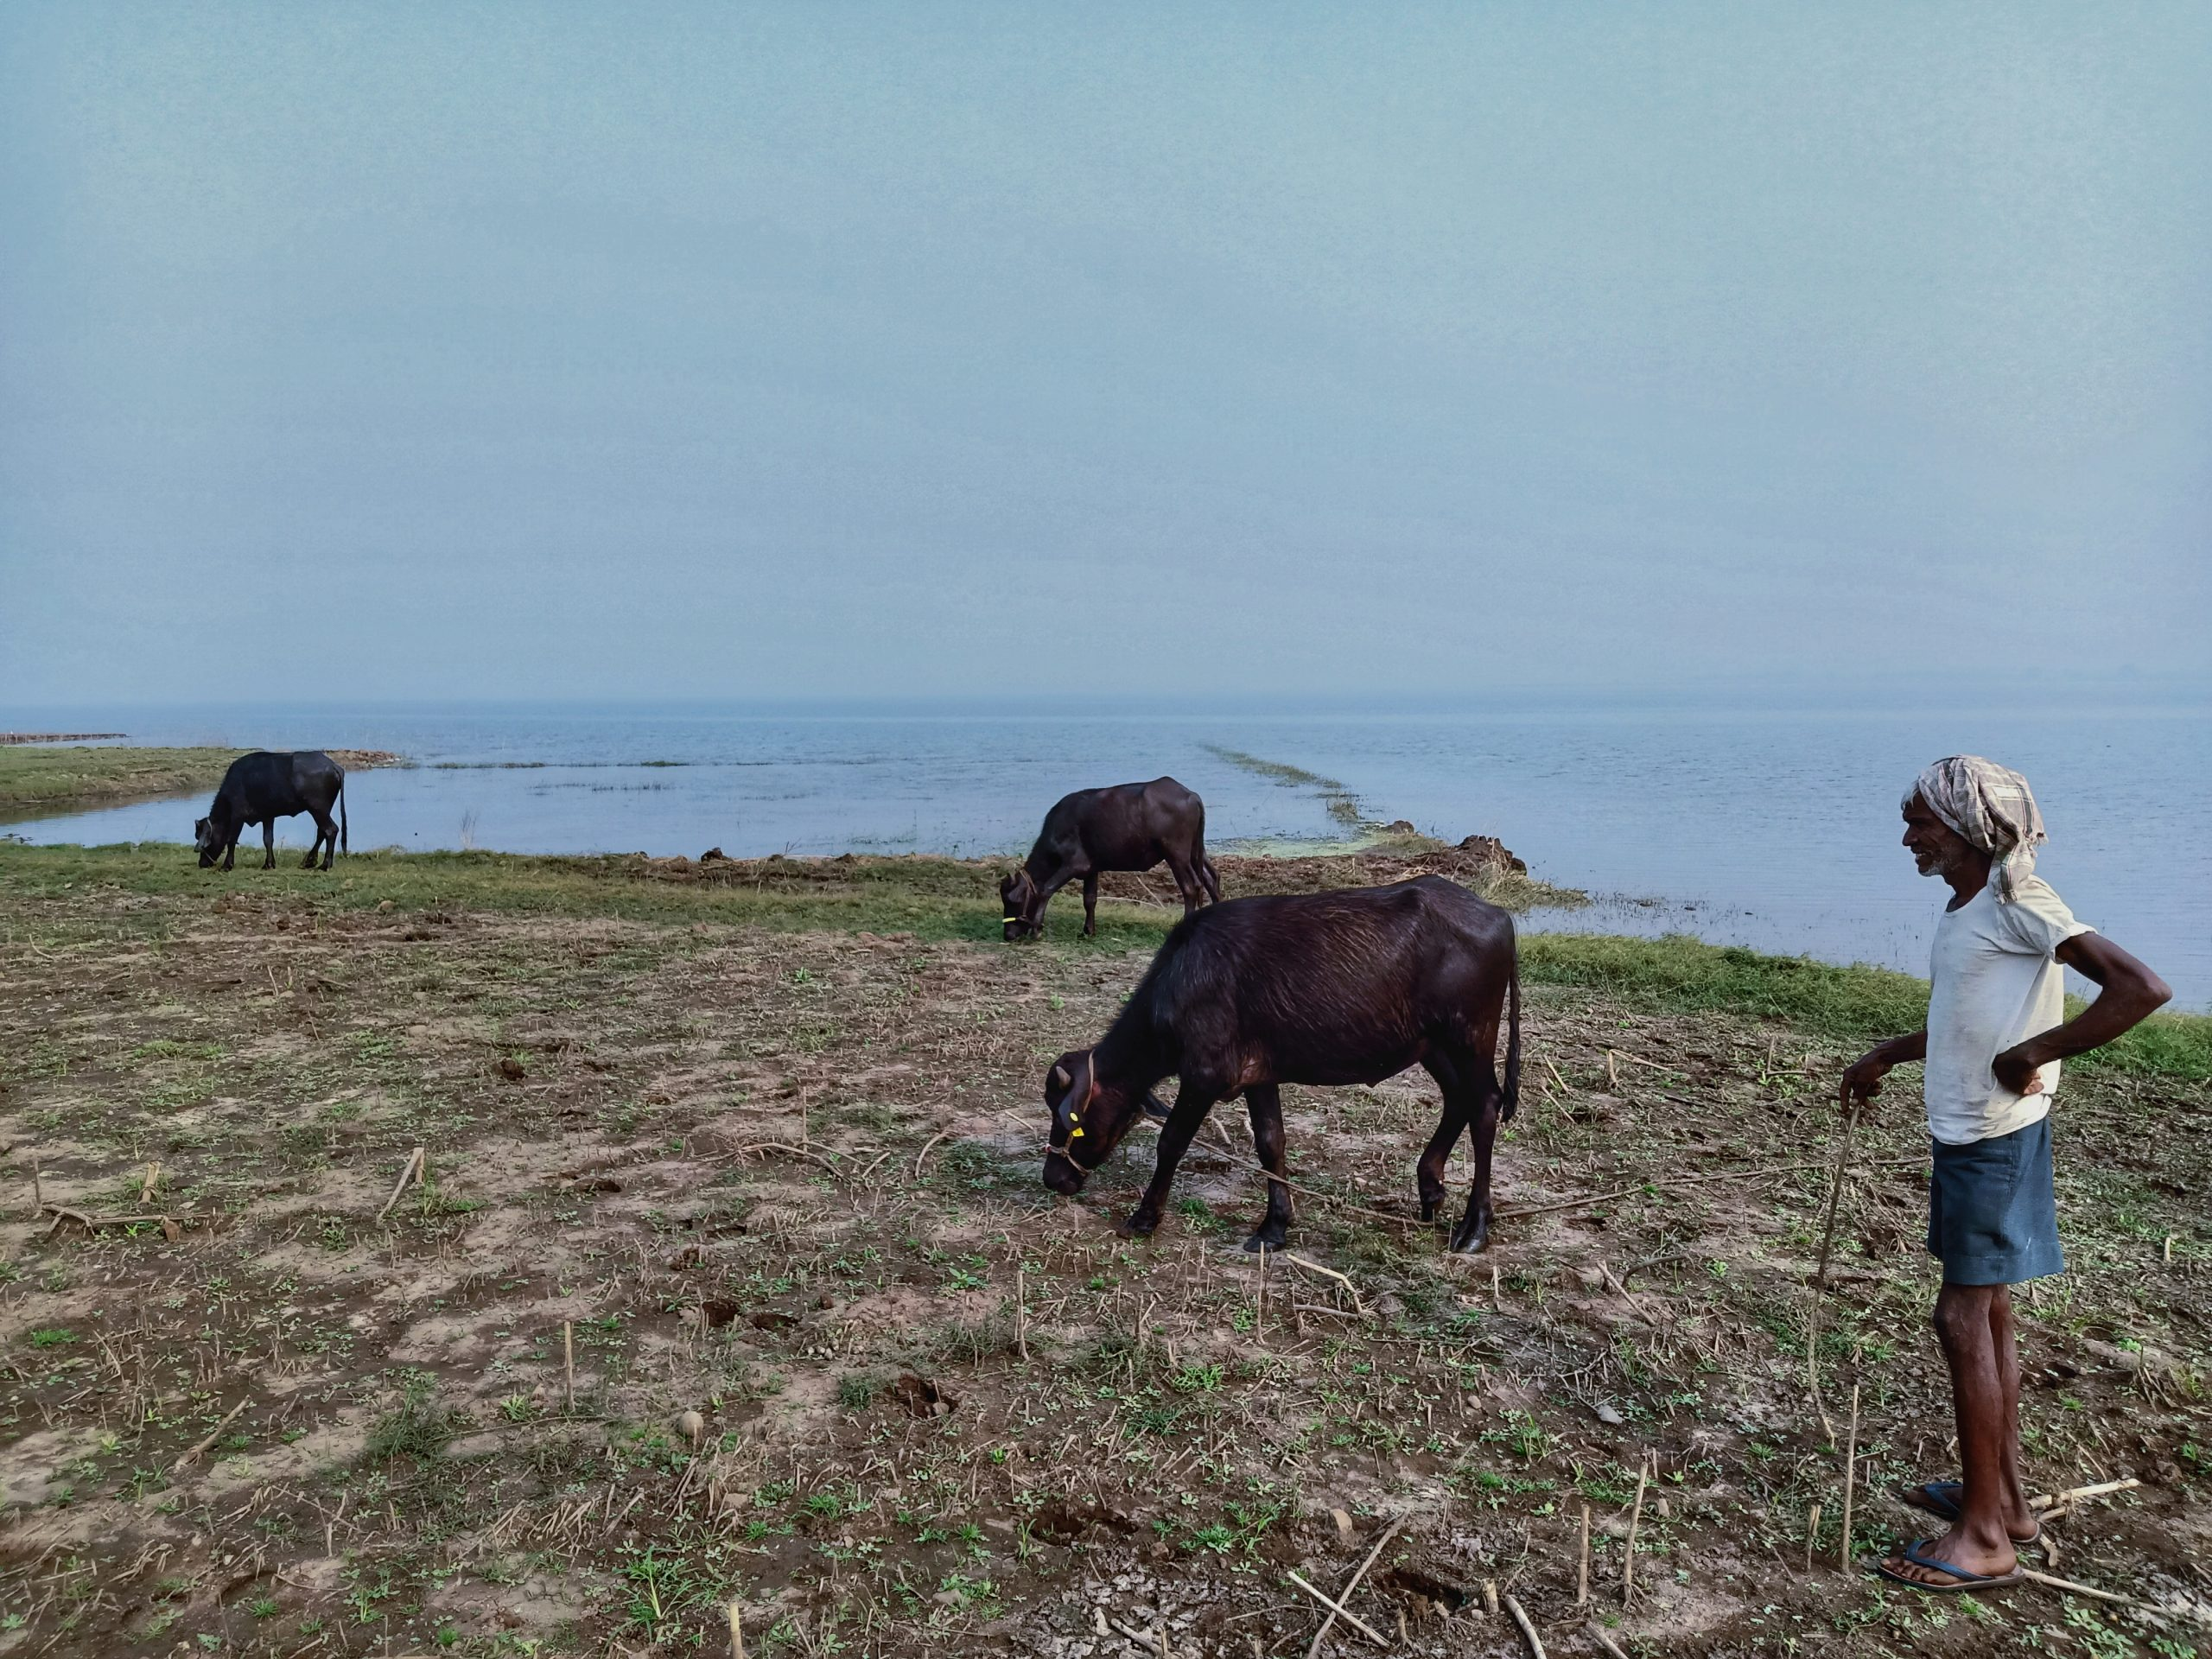 Man grazing animals at rive site